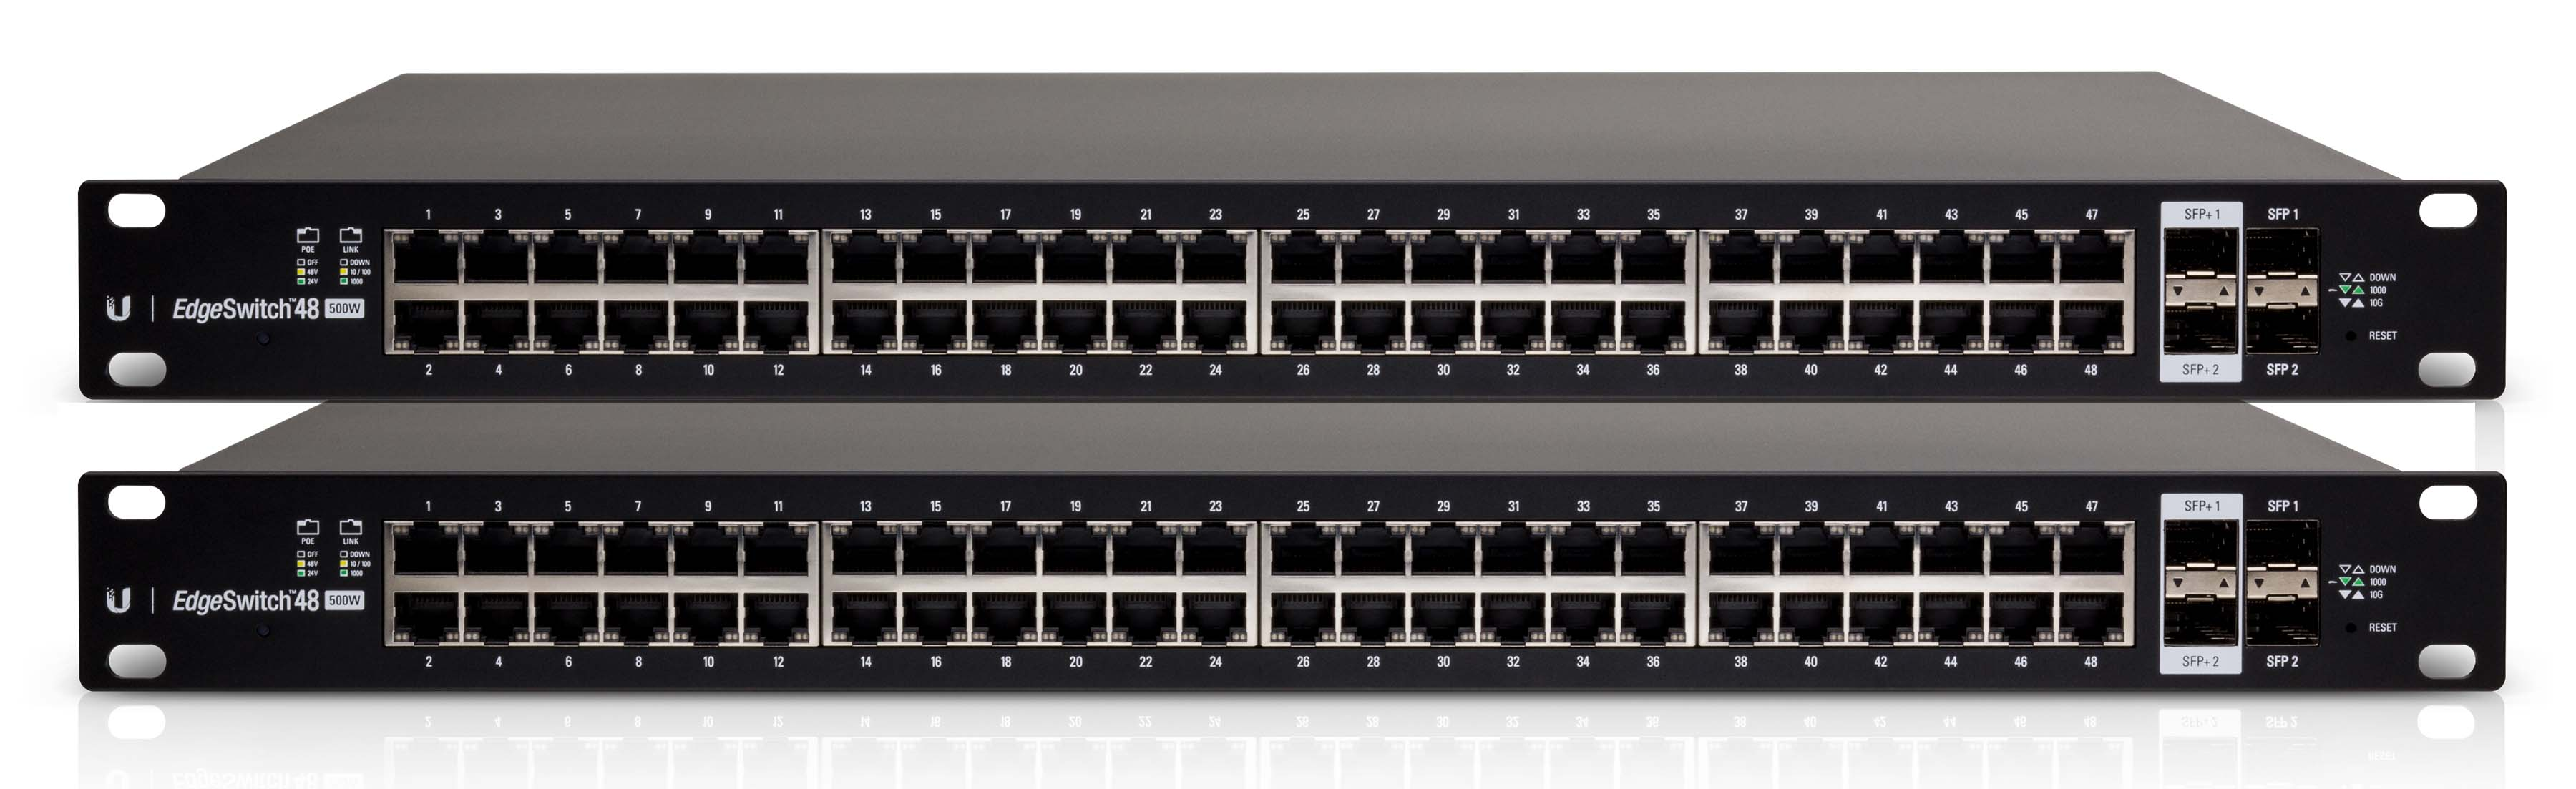 UBNT EdgeSwitch 48 Port 500W PoE+ Layer3 Yönetileblir Switch